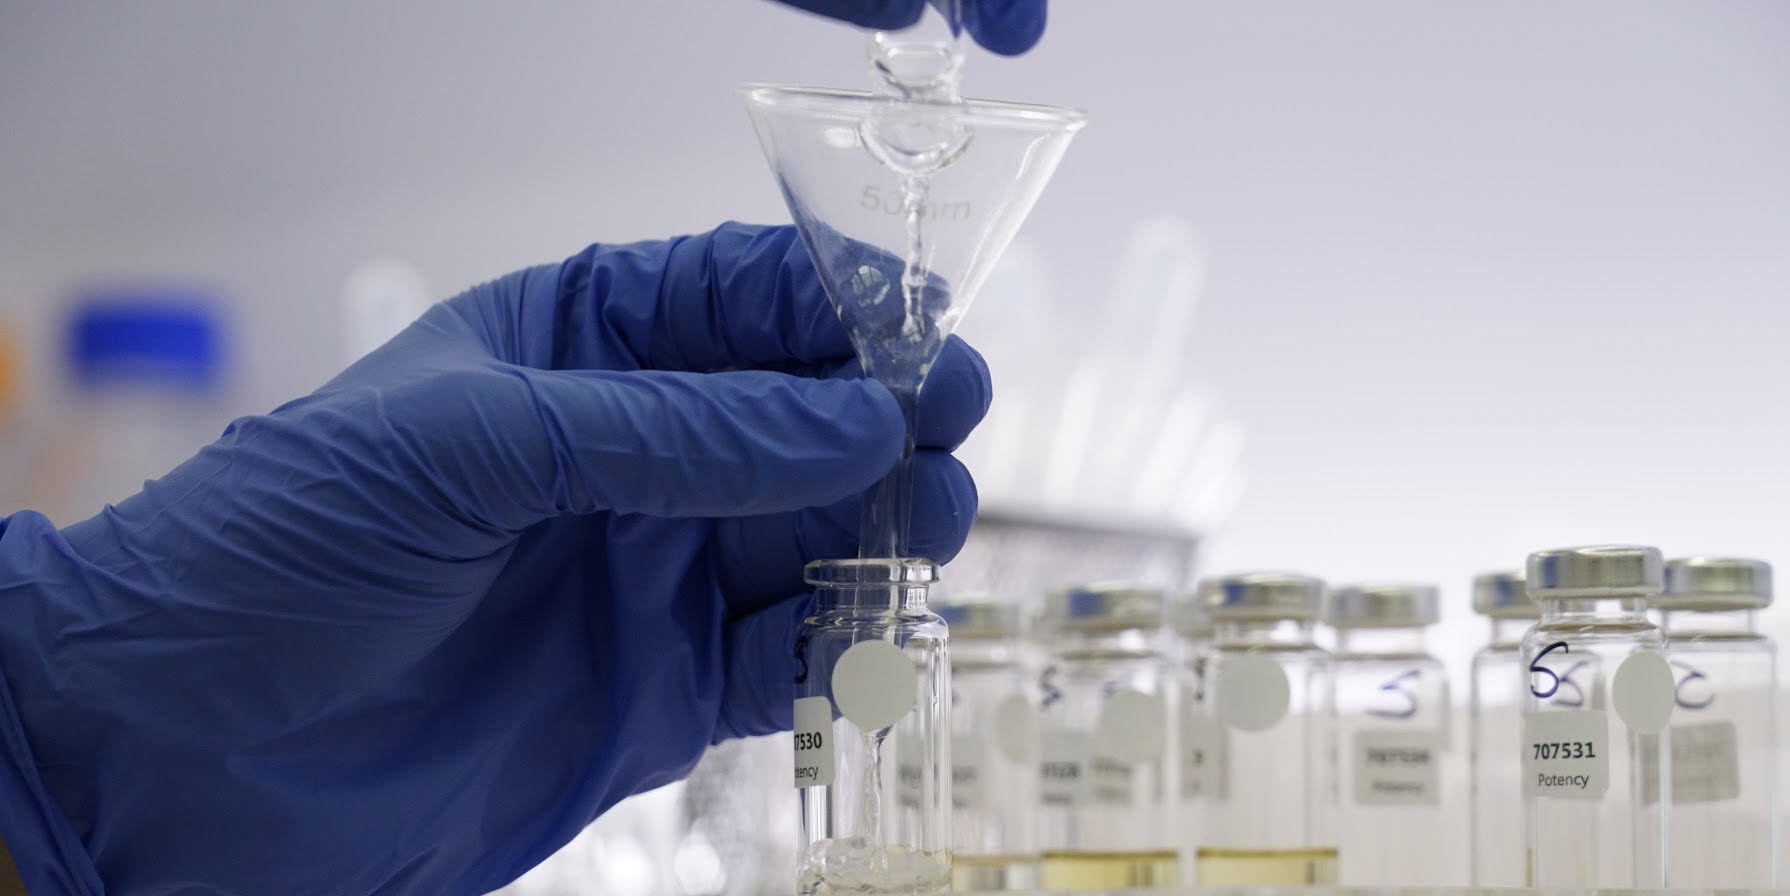 ACS Laboratory Now Tests for 17 Cannabinoids, More Than Any Lab in the Southeastern US